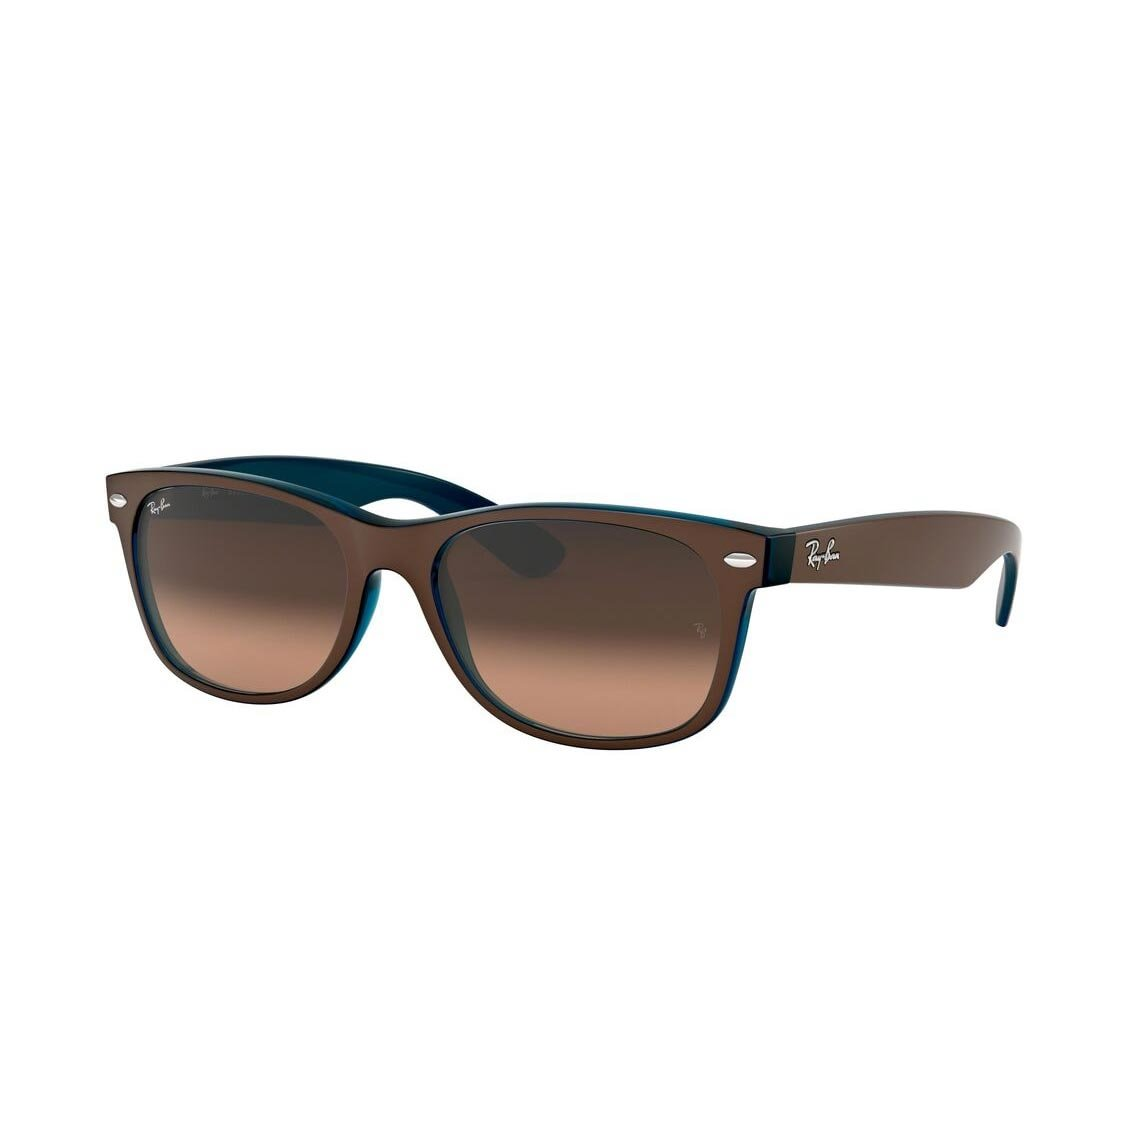 Ray-Ban New Wayfarer RB2132 6310A5 55